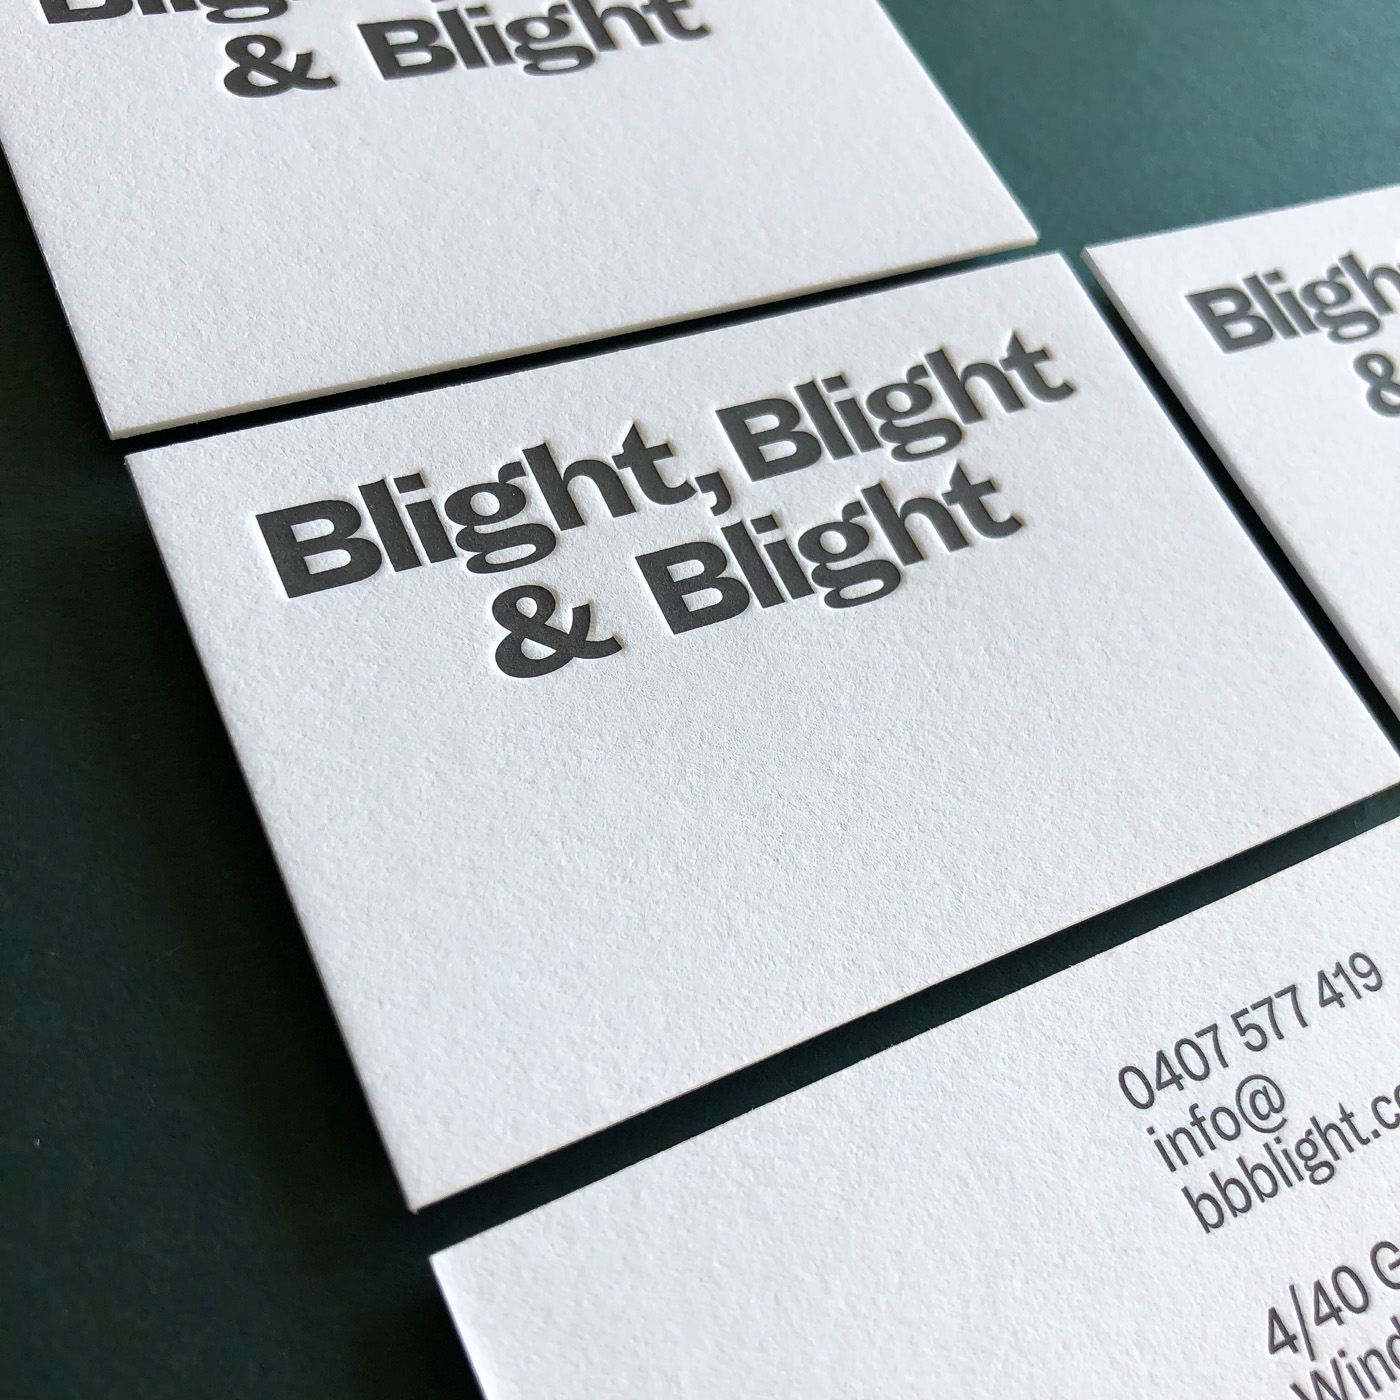 Cotton letterpress business cards for Blight, Blight & Blight on Crane Lettra 1